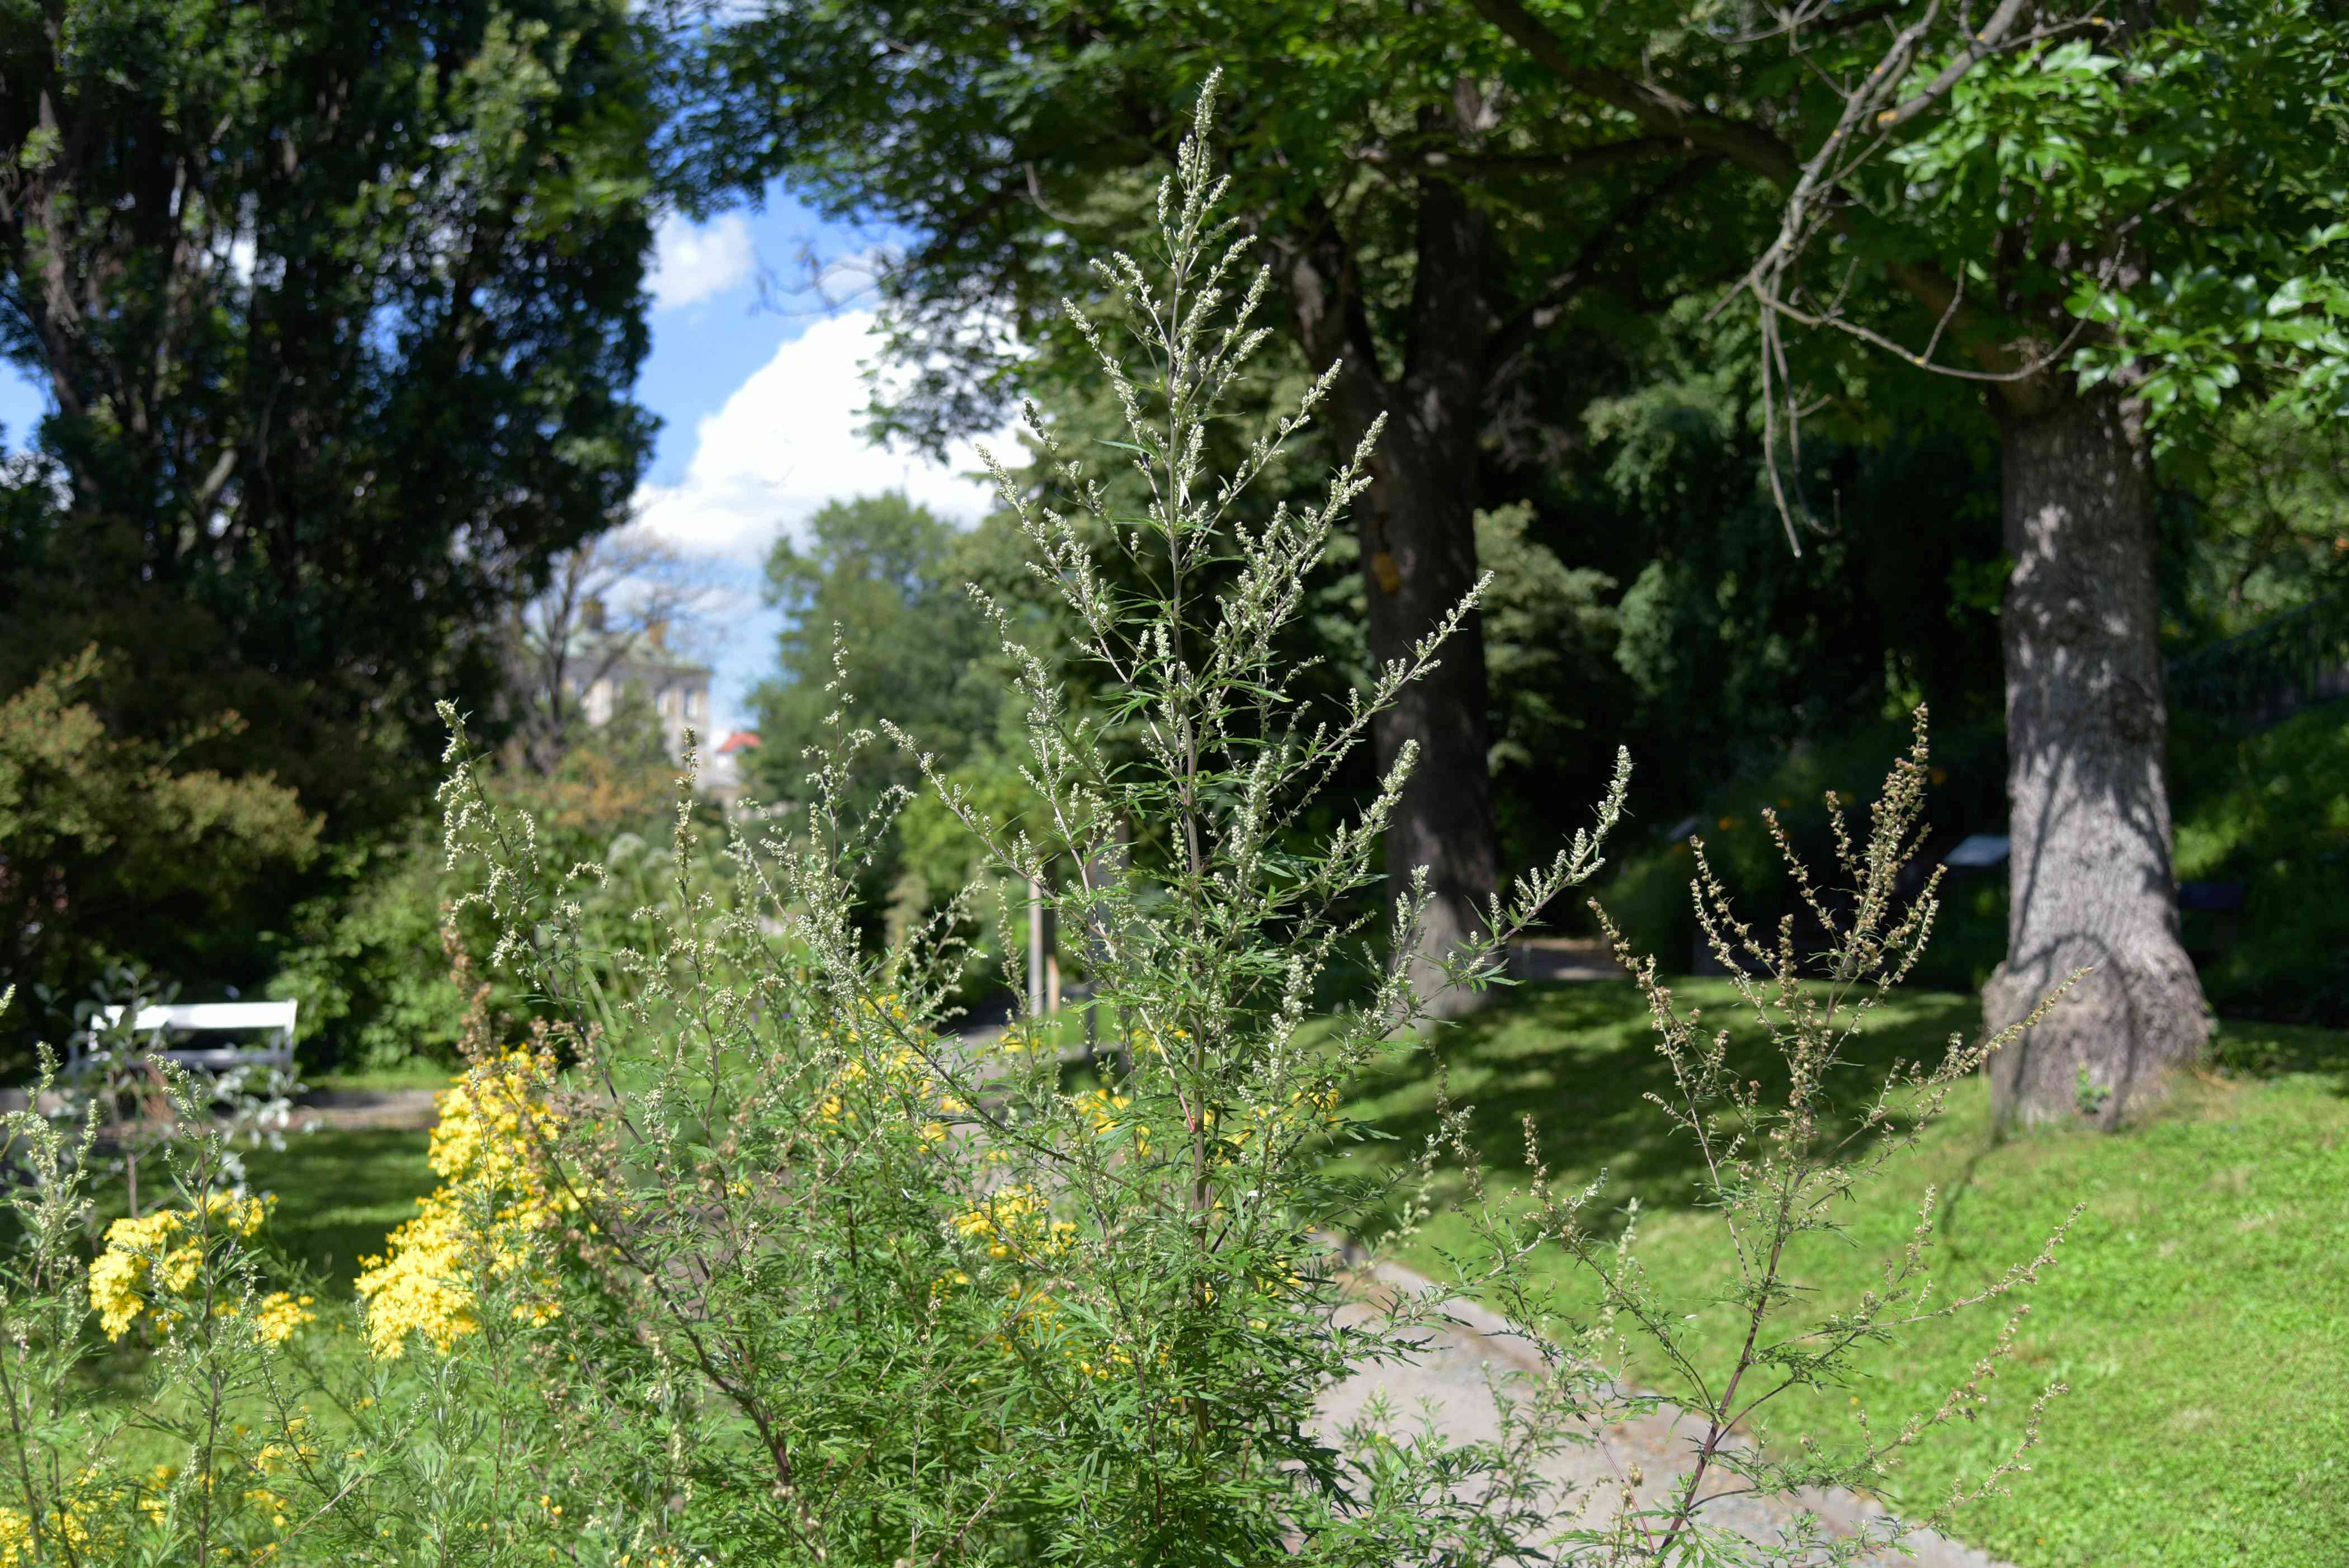 Mugwort plant with tall thin stems with small yellow flowers near pathway